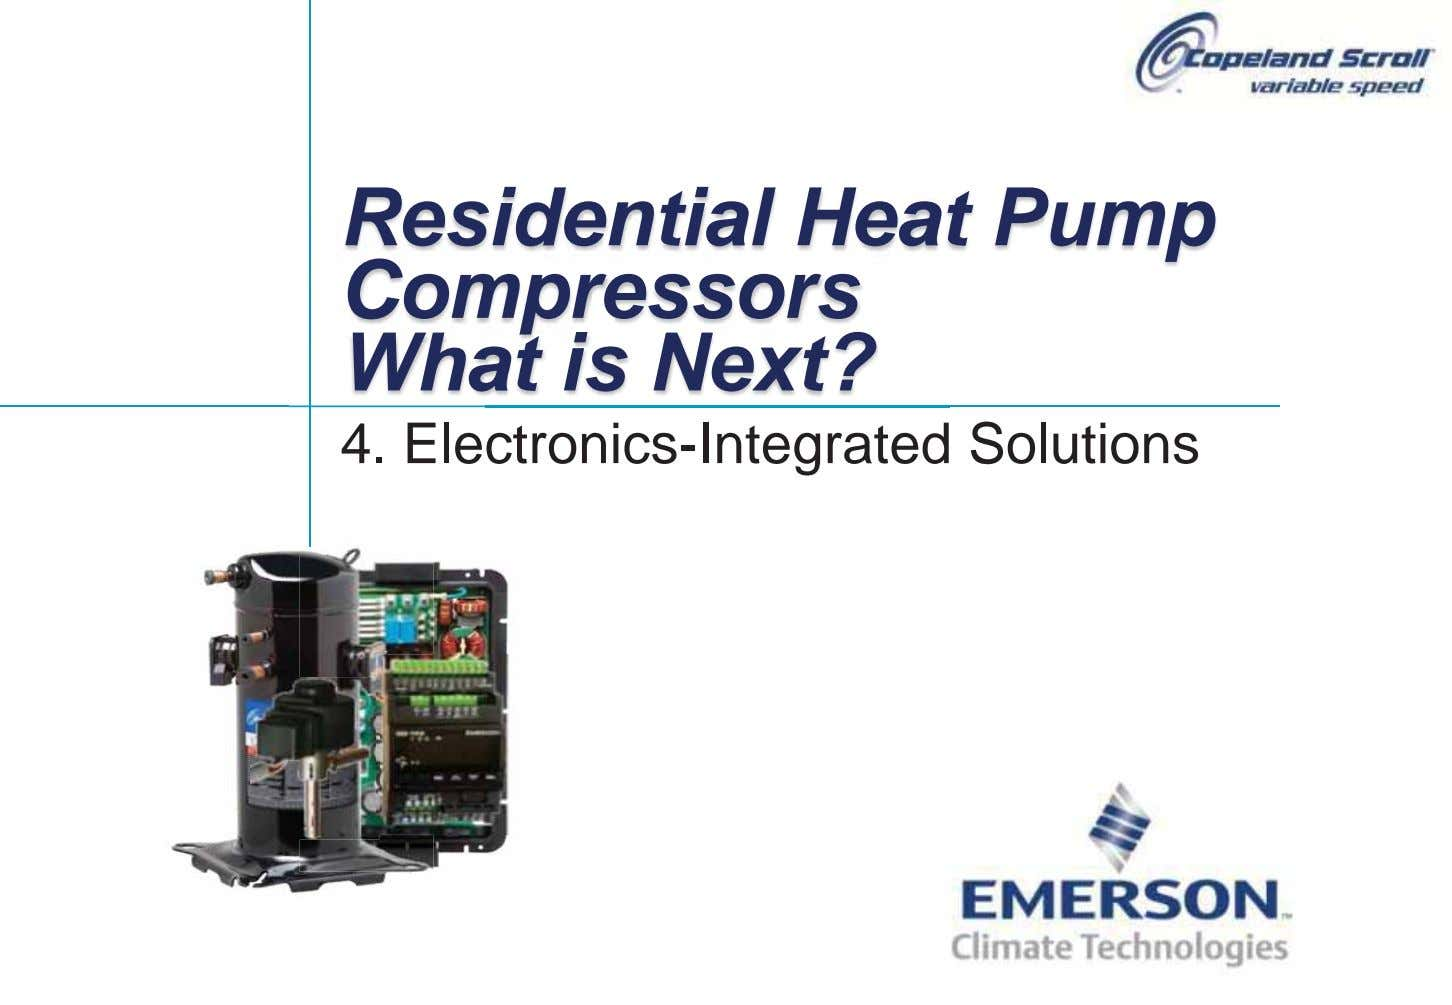 Residential Heat Pump Compressors What is Next? 4. Electronics-Integrated Solutions